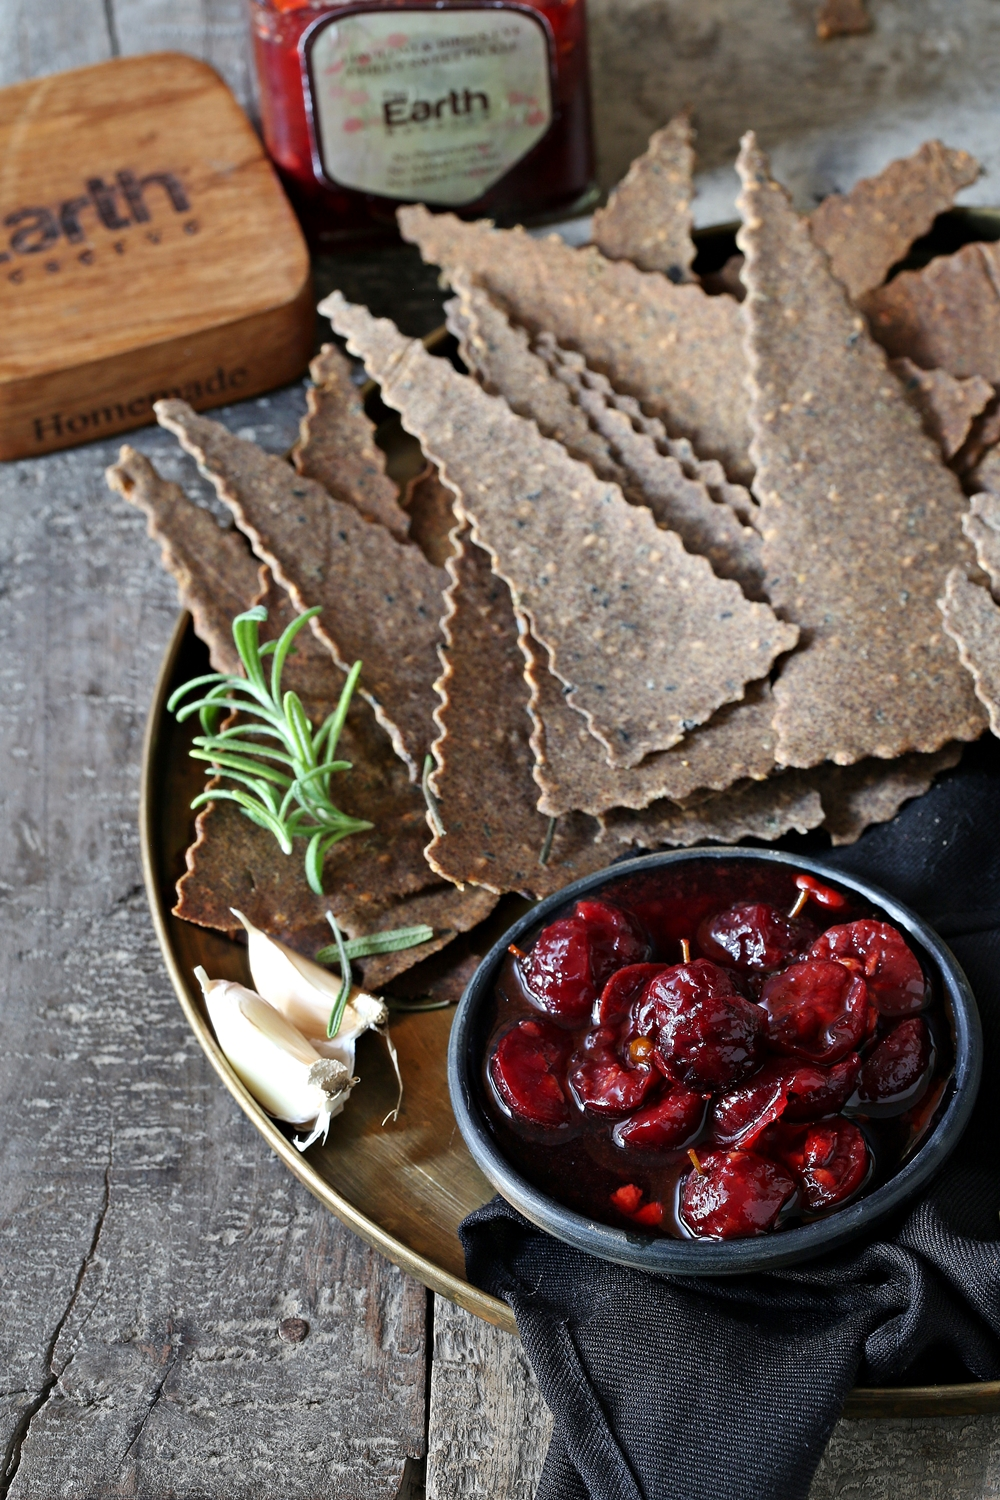 Rosemary Garlic Sesame Millet Crackers with Lovilovi and Bird's Eye Sweet Chili Pickle